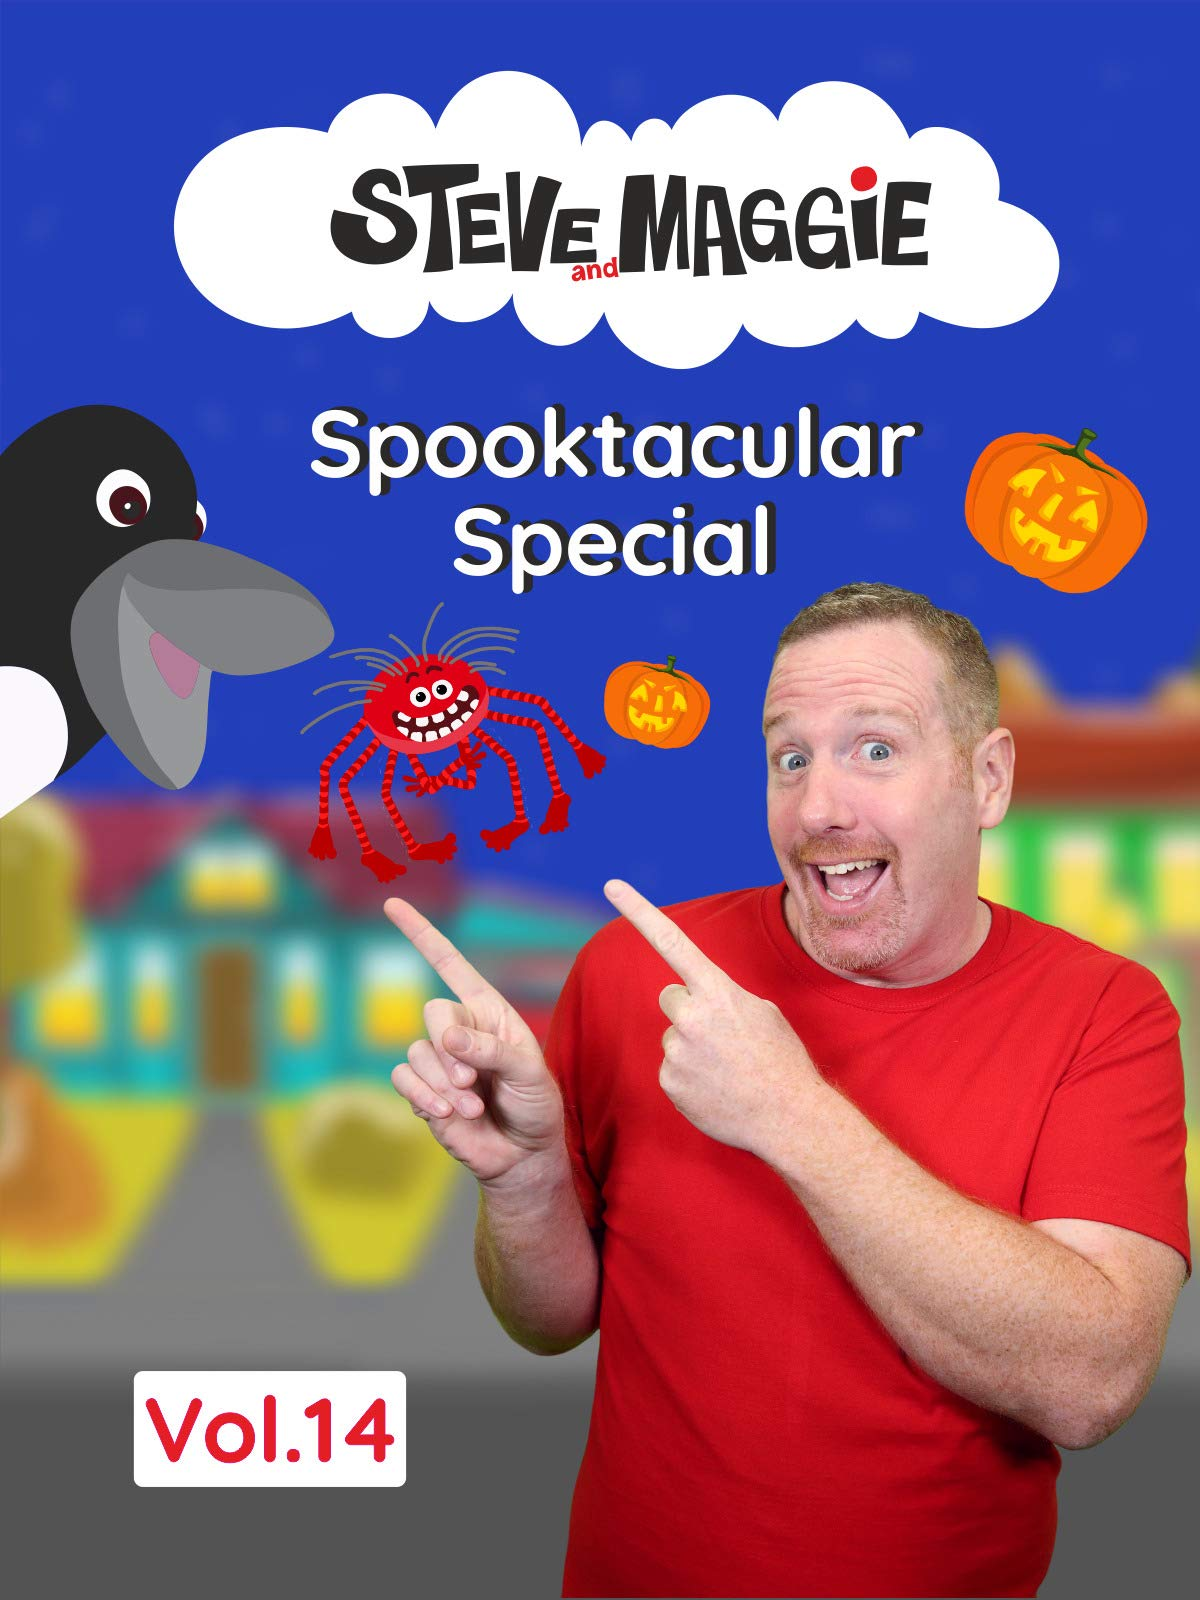 Steve and Maggie - Spooktacular Special (Vol. 14)